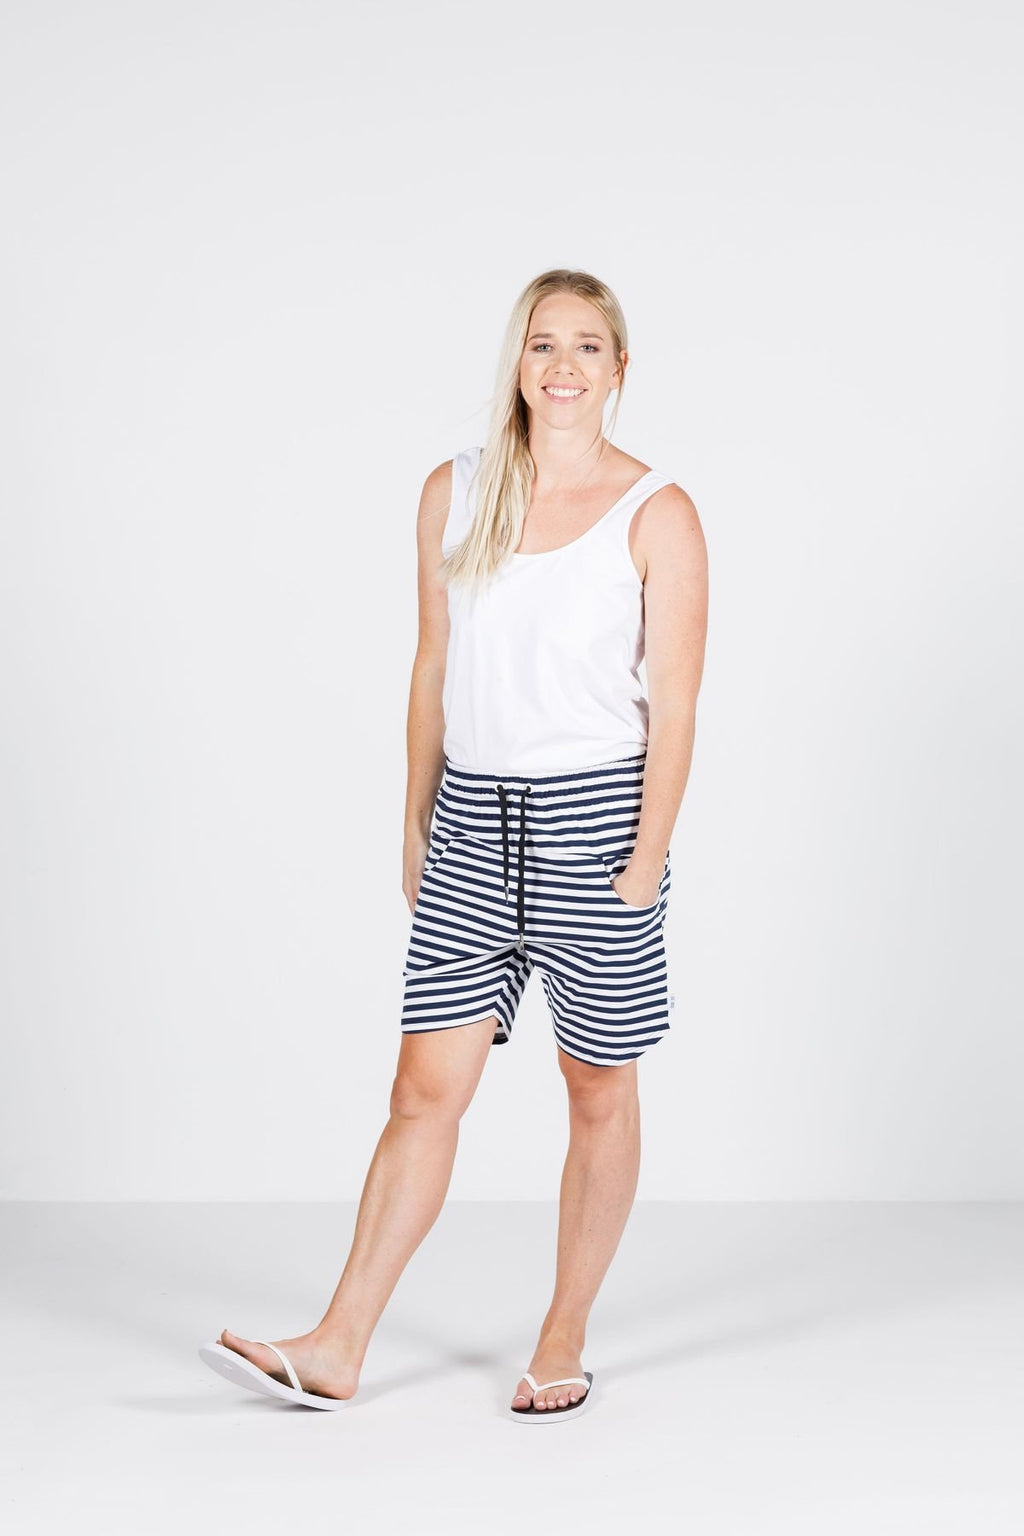 APARTMENT SHORTS NAVY WITH WHITE STRIPES - APARTMENT SHORTS NAVY WITH WHITE STRIPES - Ebony Boutique NZ